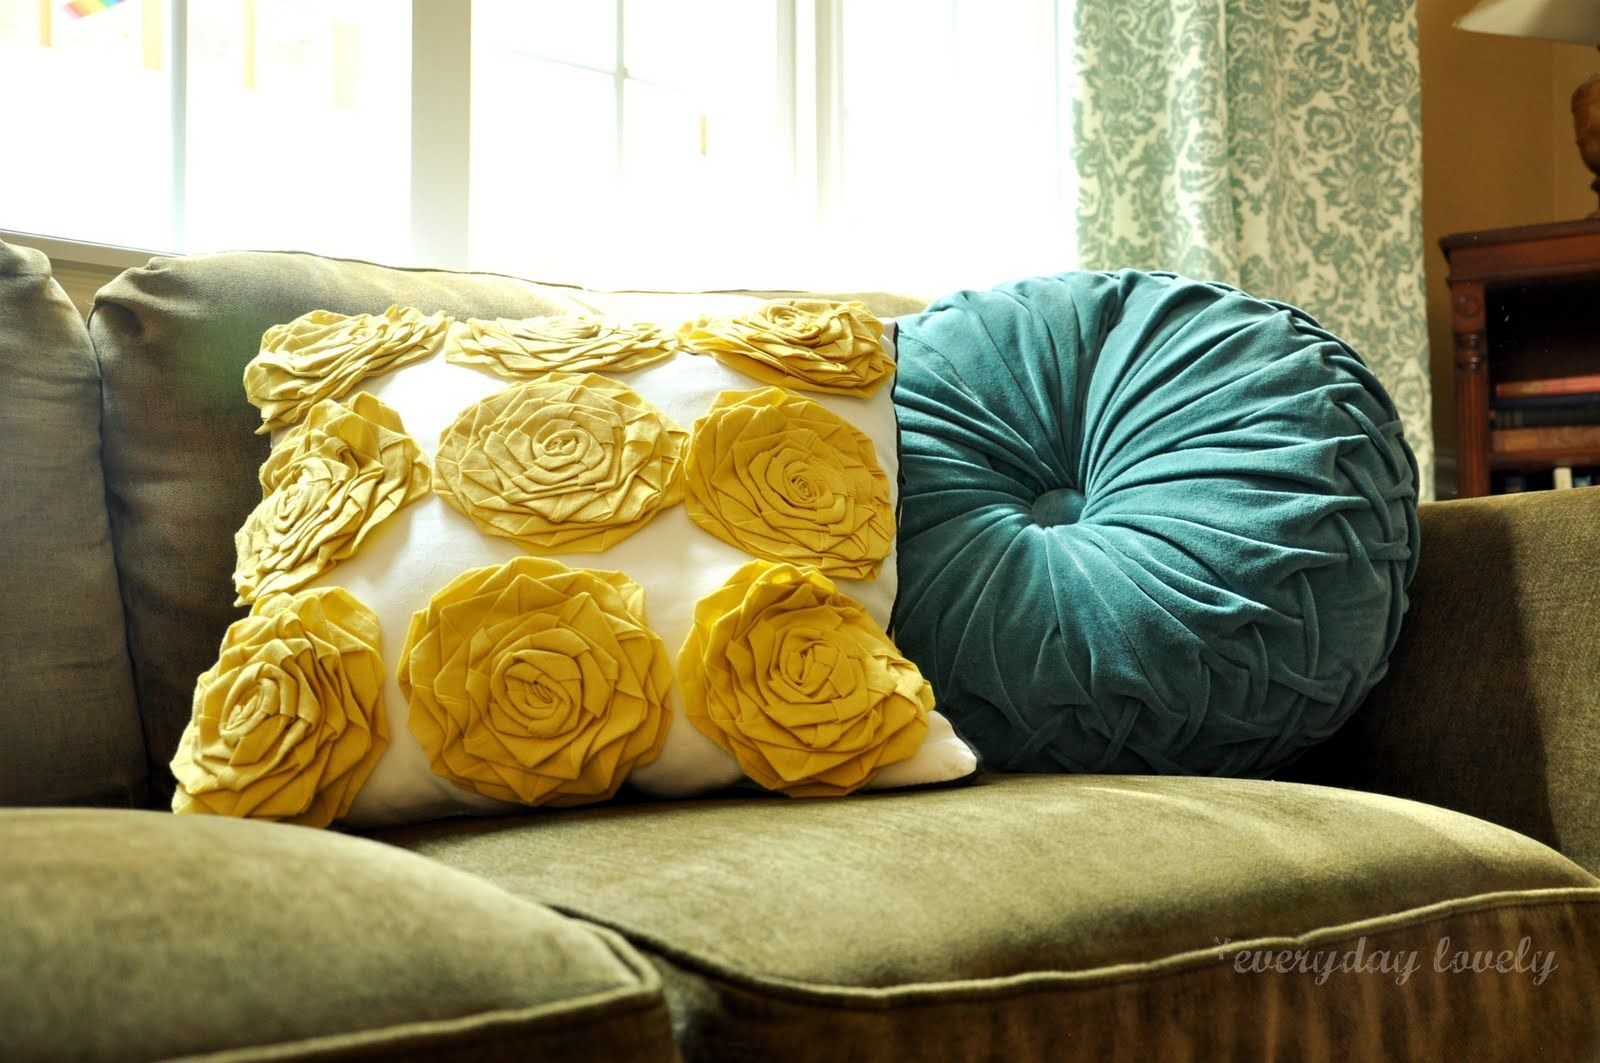 The Blue Pillow Accent, Would Be A Nice Change With My Olive Green Couch And Gold Walls! I